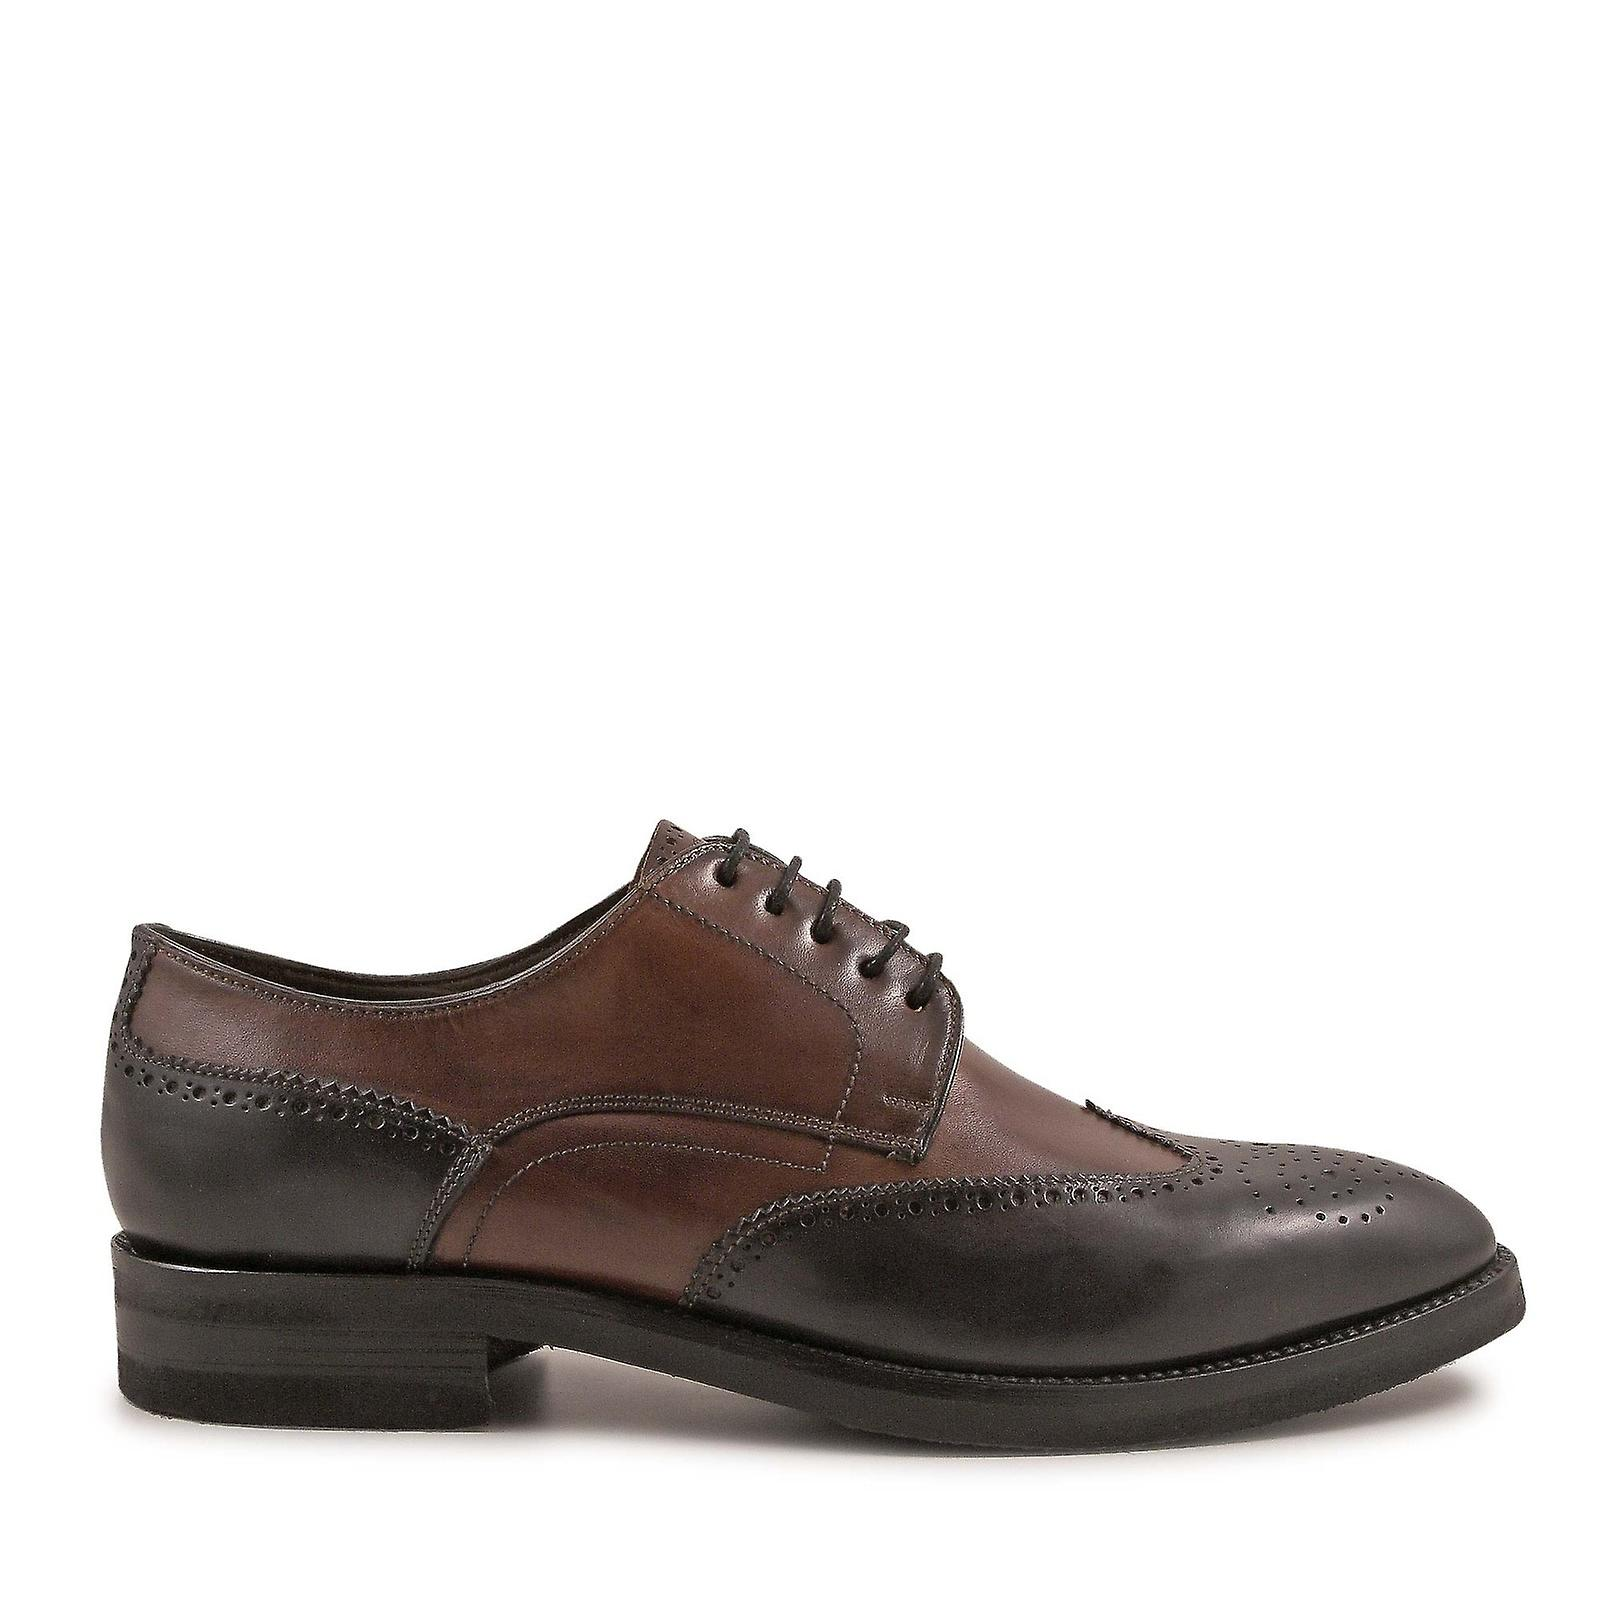 Leonardo Shoes Sngbrownblackleat2 Men's Brown/black Leather Lace-up Shoes OeSRMD